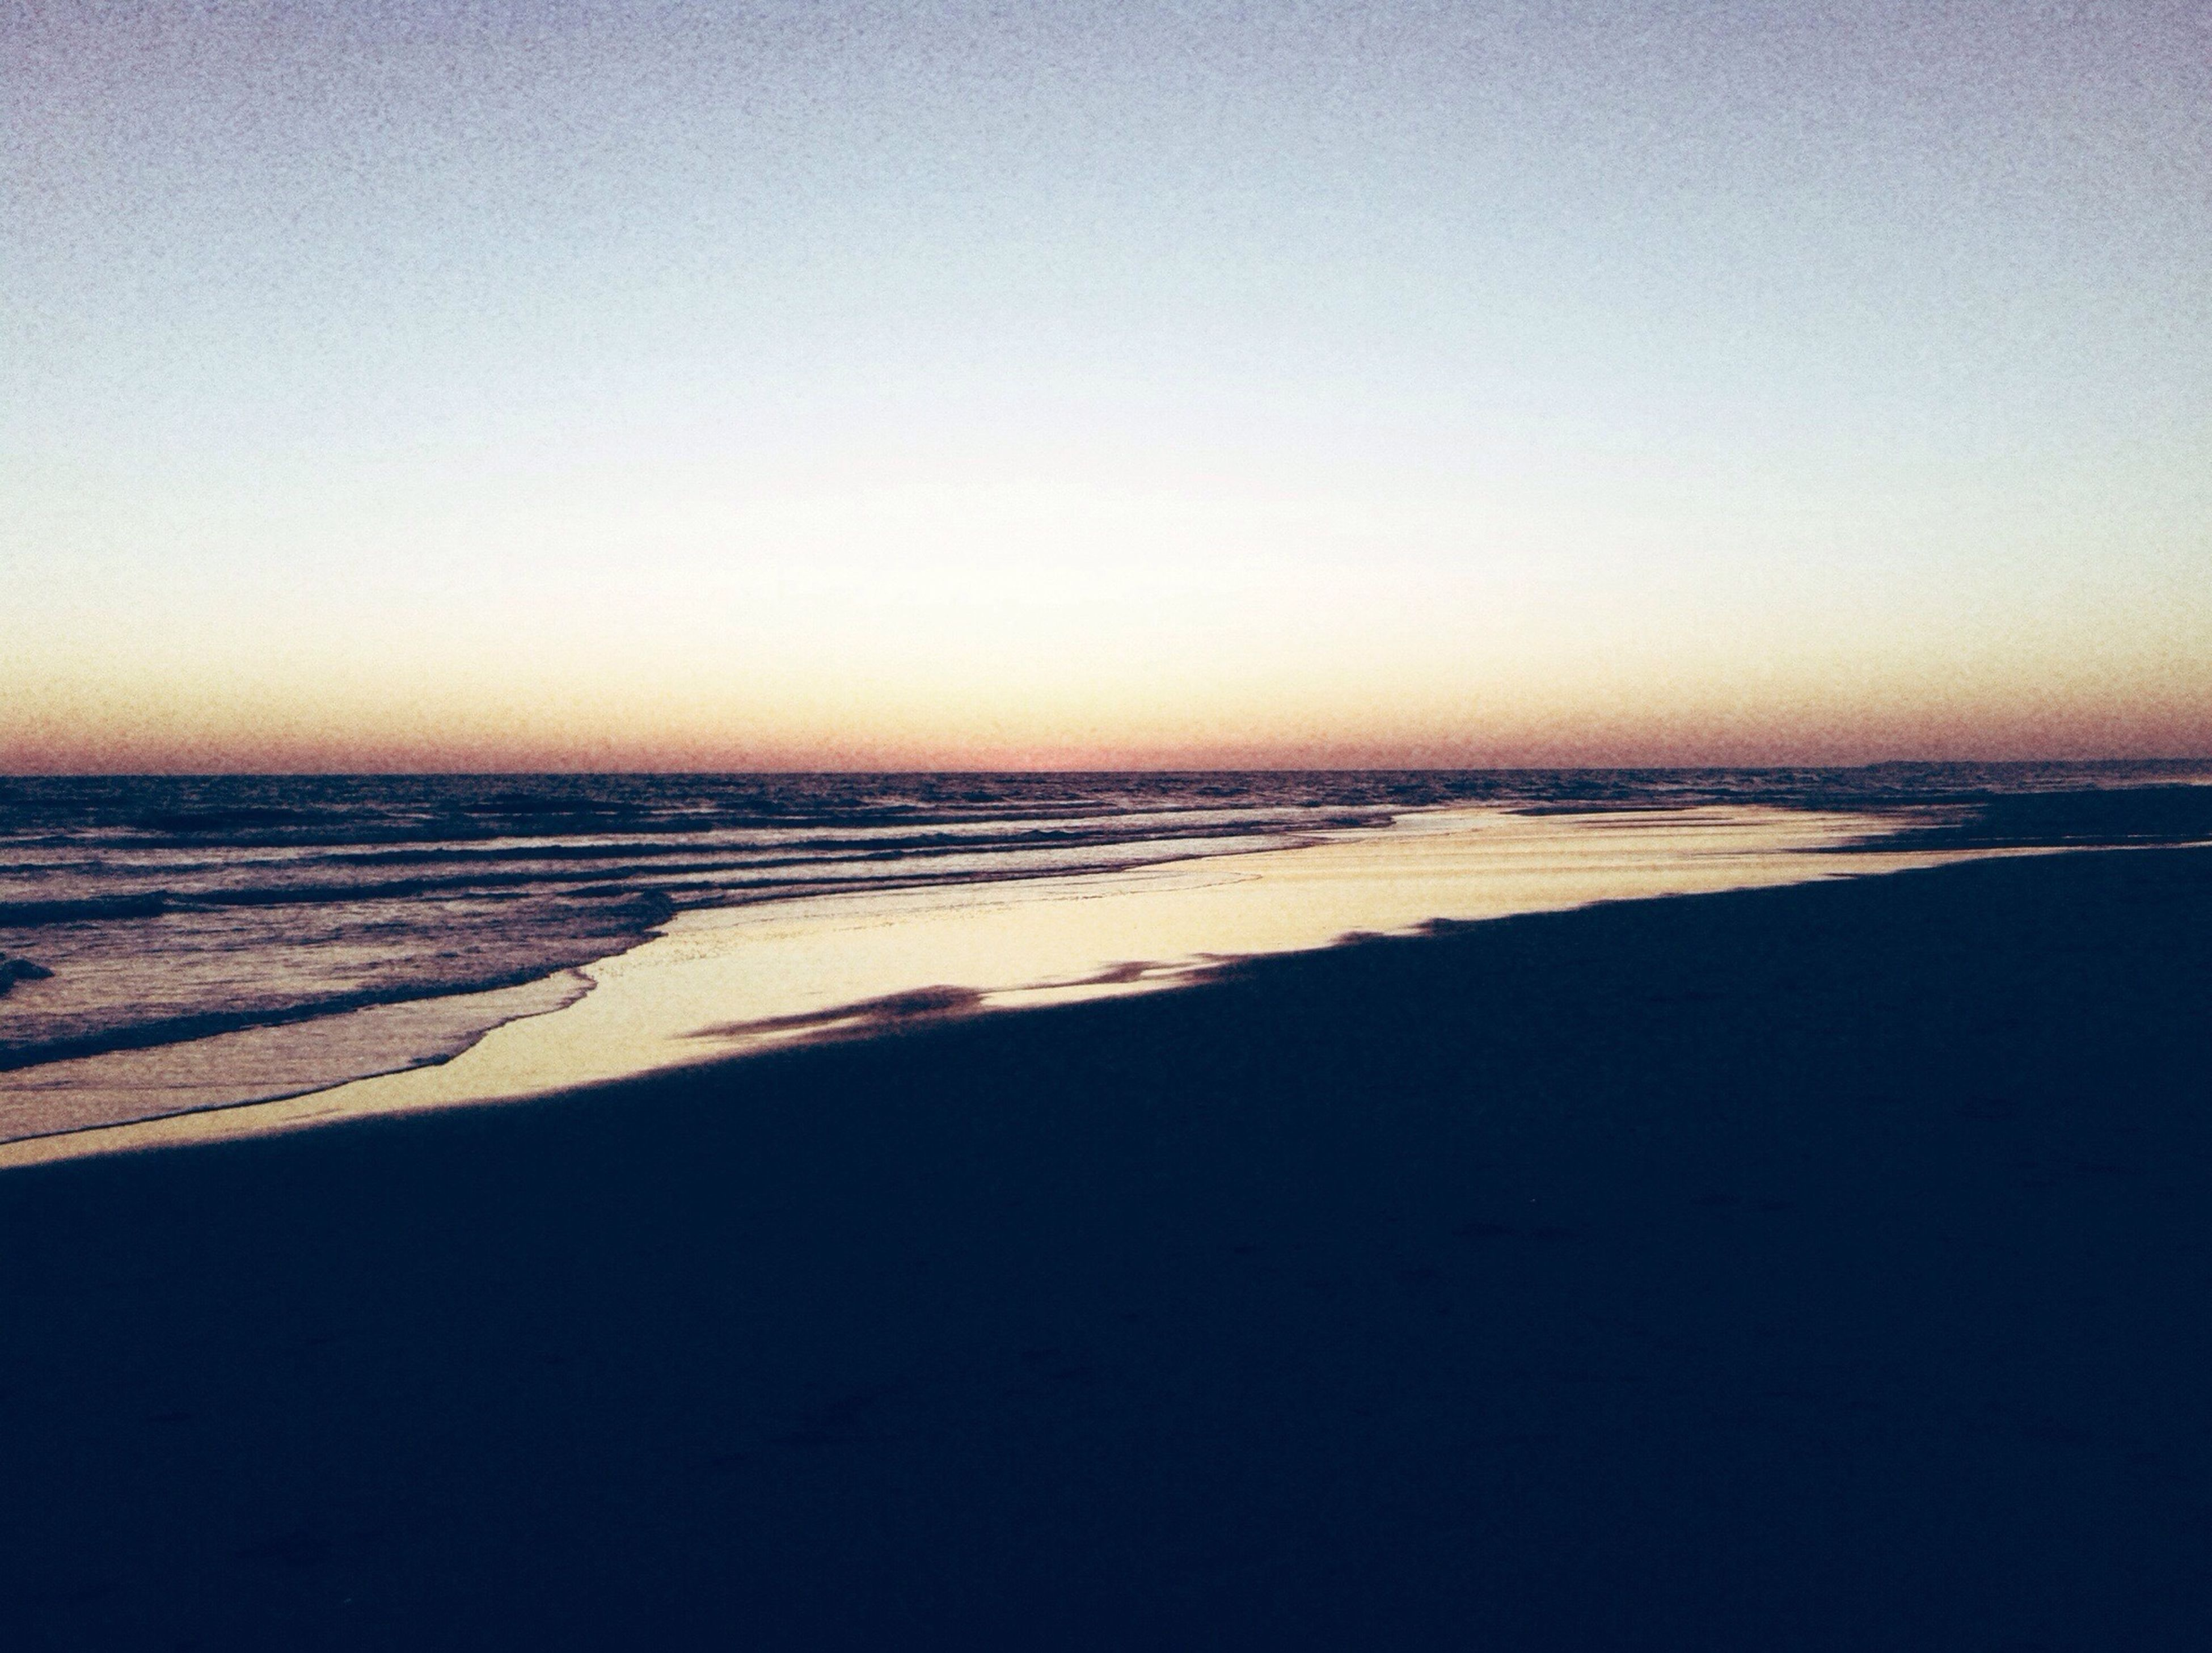 sea, horizon over water, copy space, clear sky, water, beach, tranquil scene, scenics, tranquility, beauty in nature, shore, sunset, nature, idyllic, sand, wave, calm, coastline, sky, remote